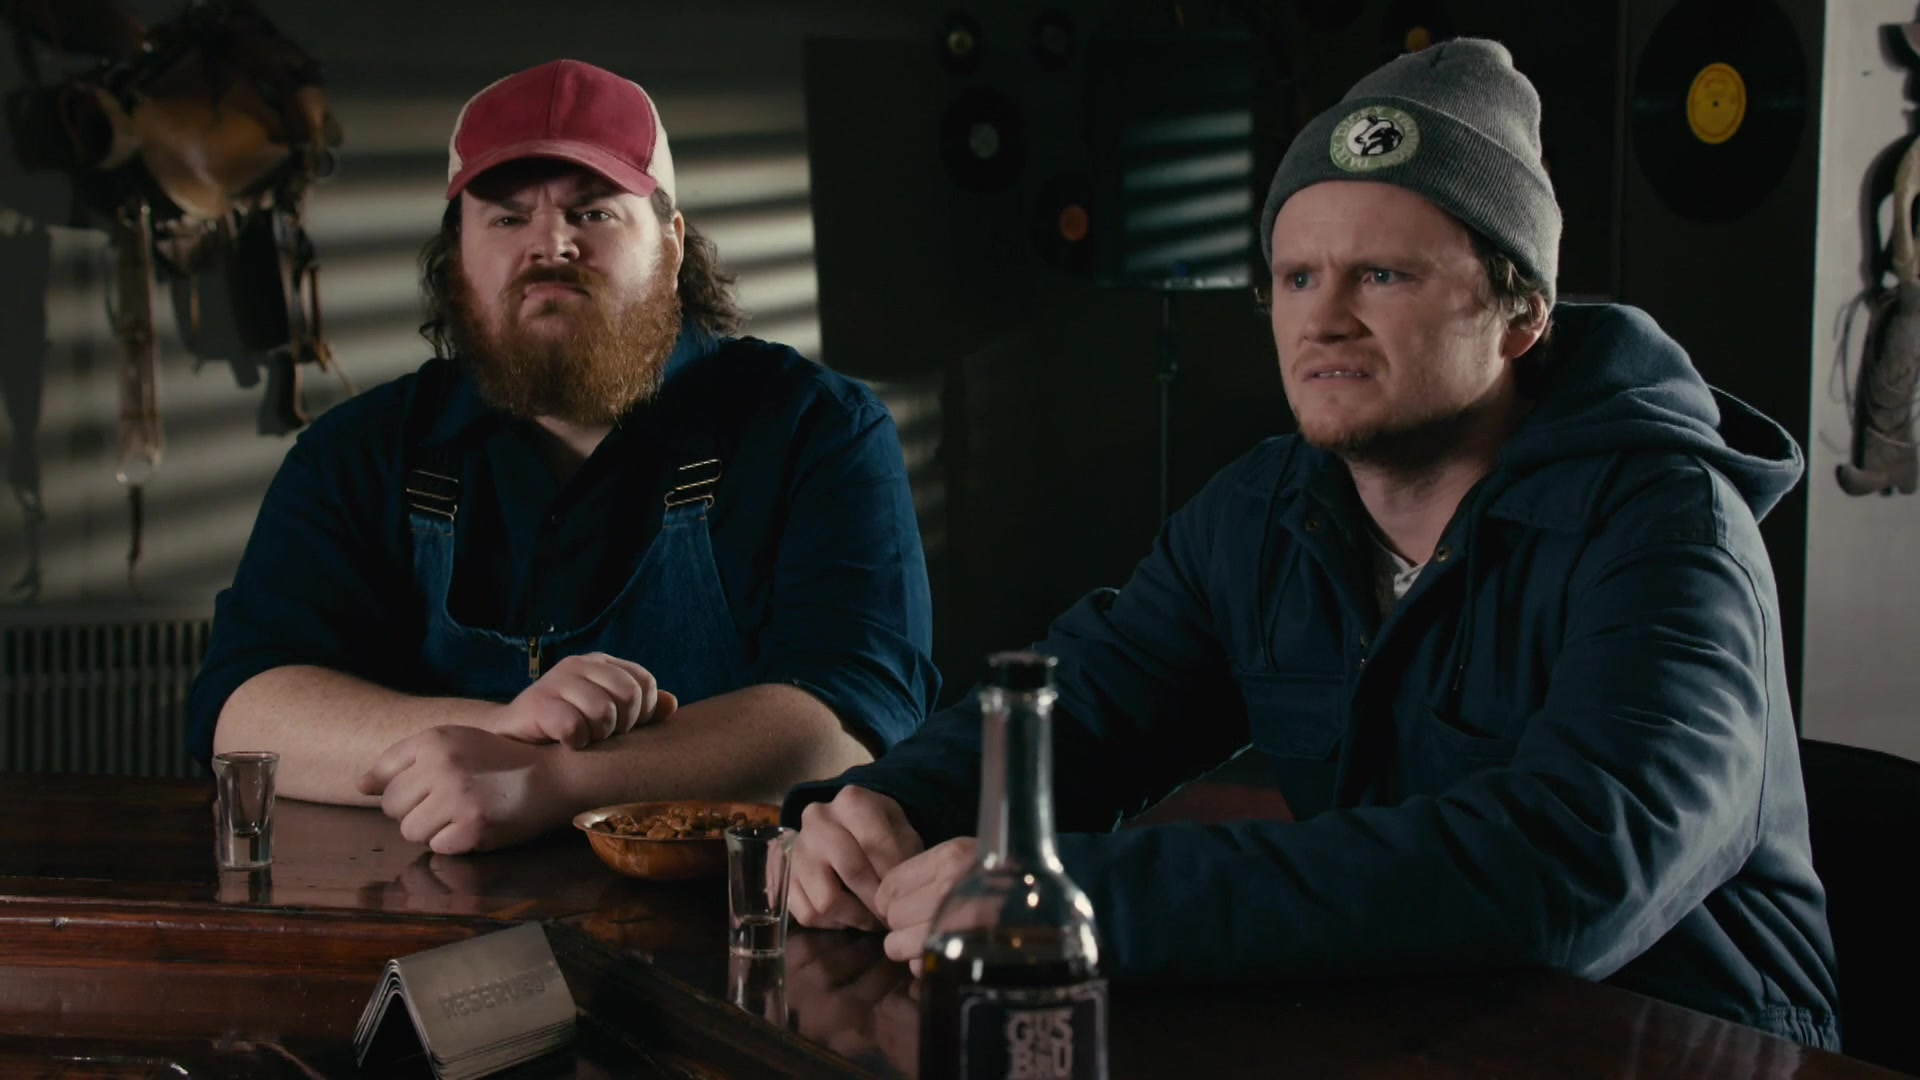 letterkenny season 5 episode 7 soundtrack